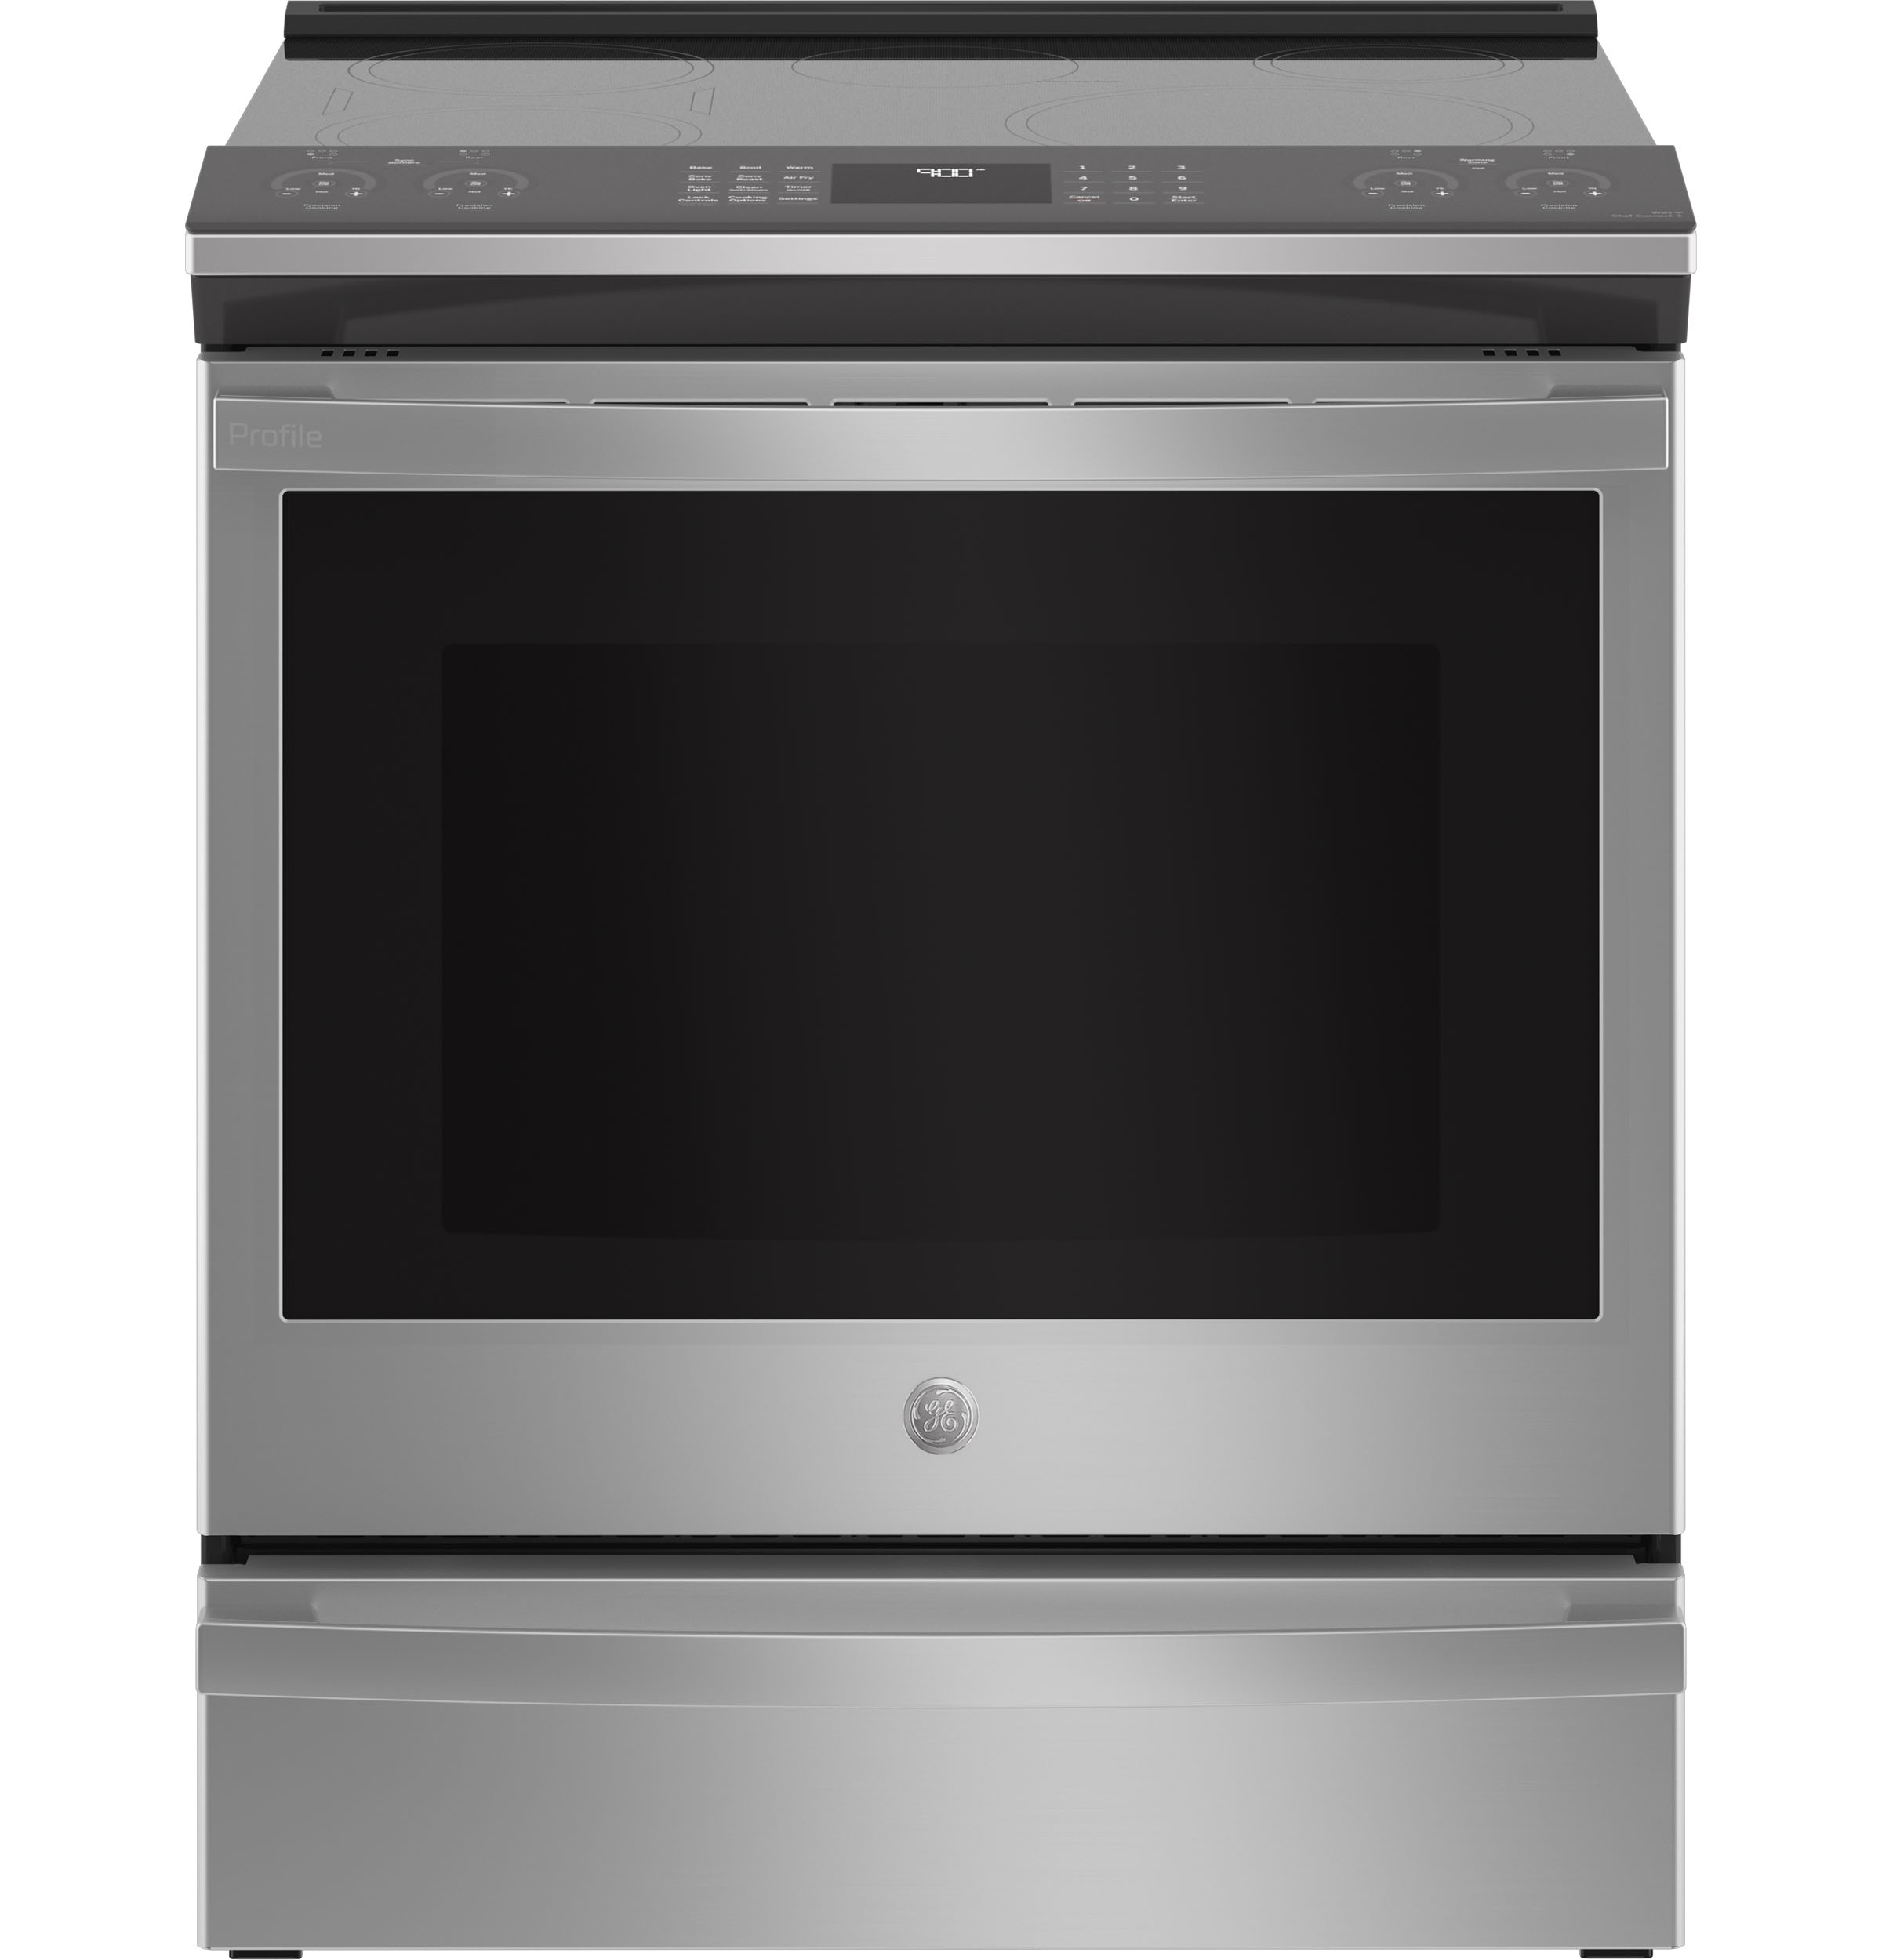 "GEGe Profile™ 30"" Smart Slide-In Fingerprint Resistant Front-Control Induction And Convection Range With No Preheat Air Fry"